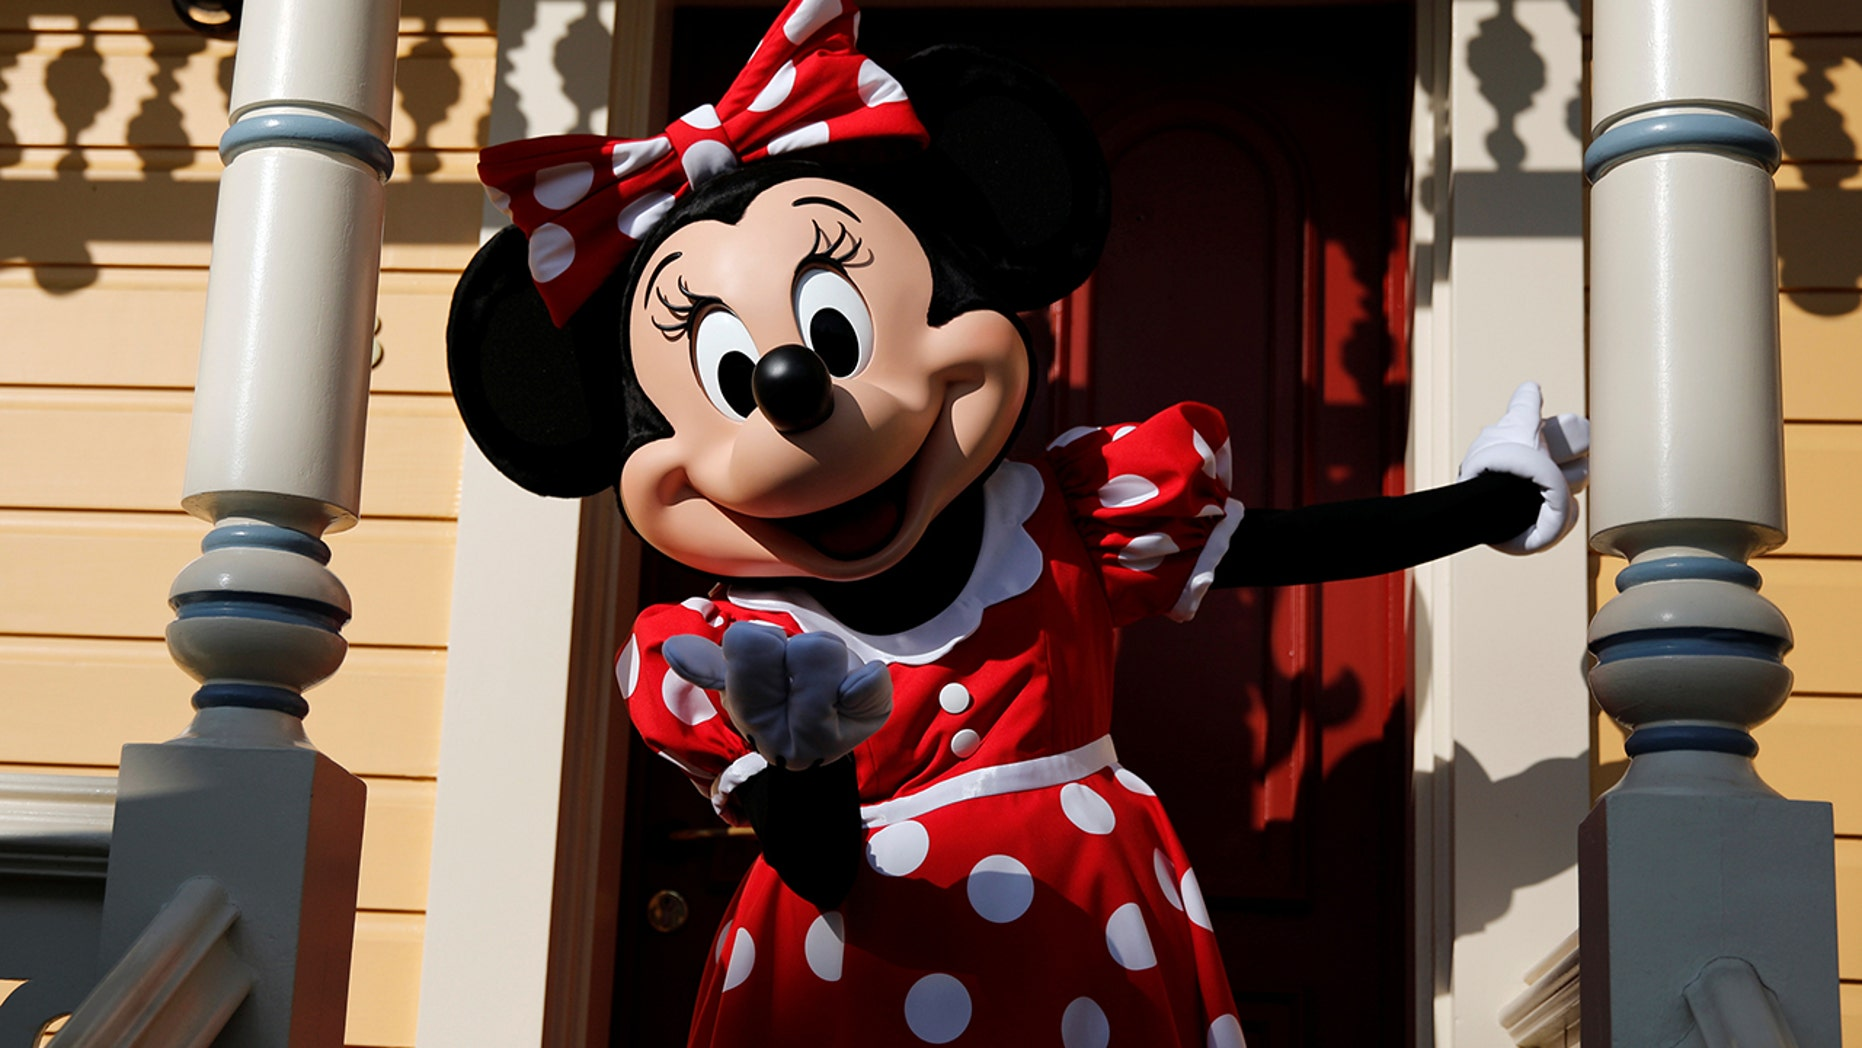 Minnie Mouse's vintage ears are creating excitement and long lines at Disneyland.